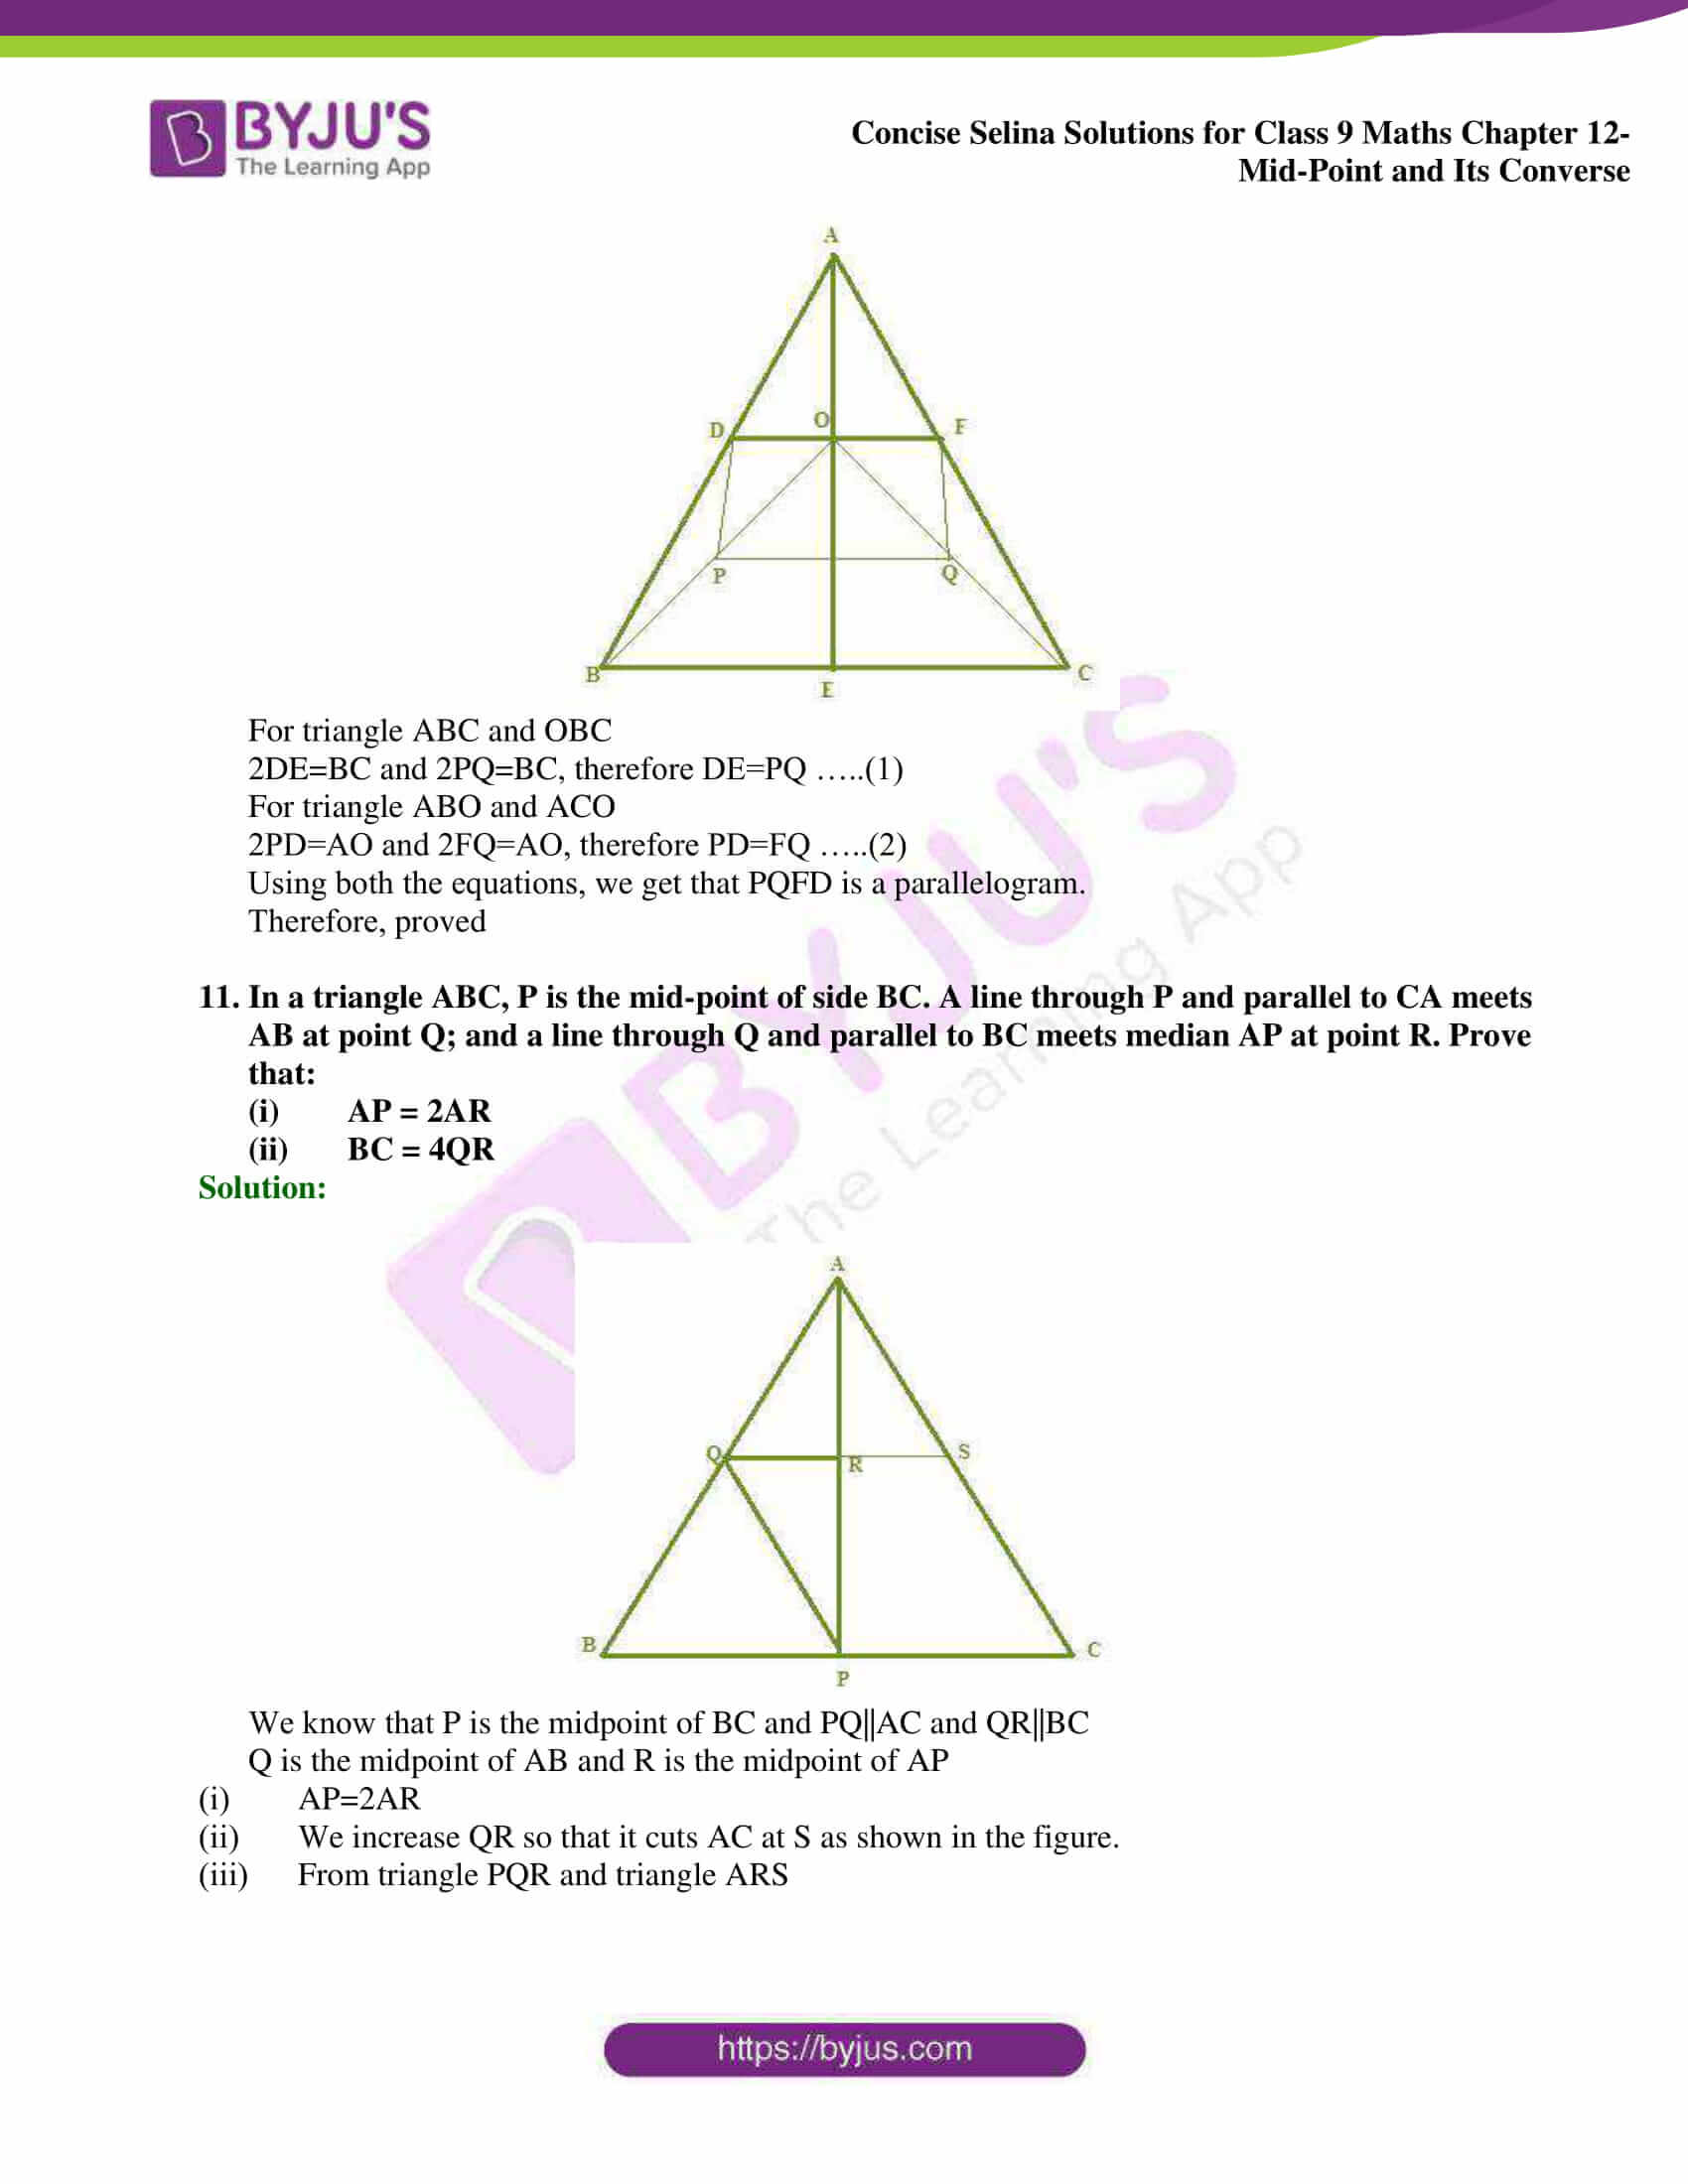 selina Solutions for Class 9 Maths Chapter 12 07